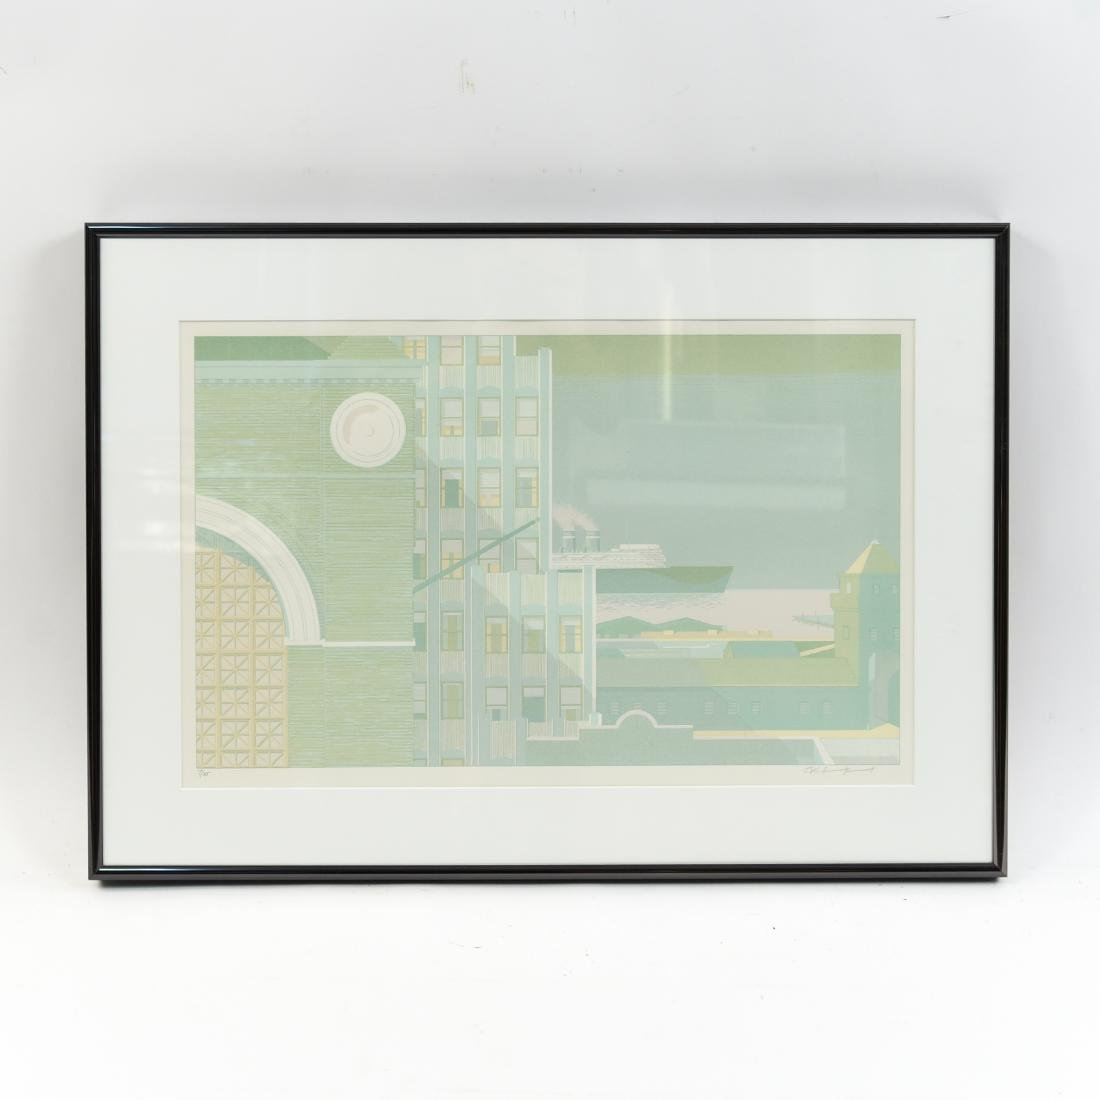 ARCHITECTURAL LITHOGRAPH II